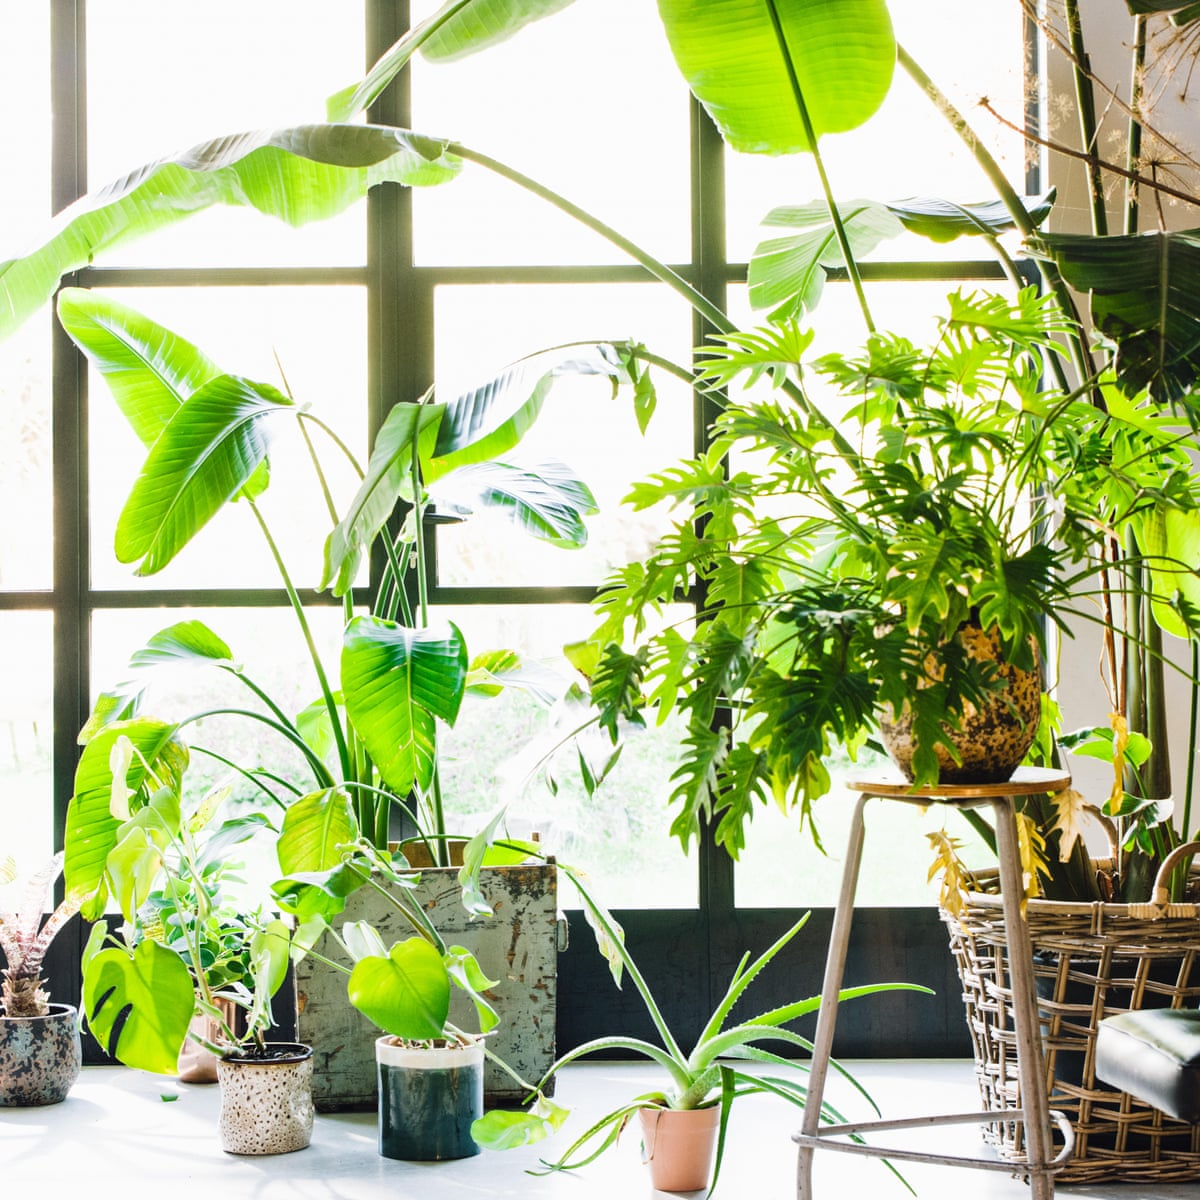 How To Grow Houseplants Fit For The Chelsea Flower Show Life And Style The Guardian,New York Times Travel Ban To Europe